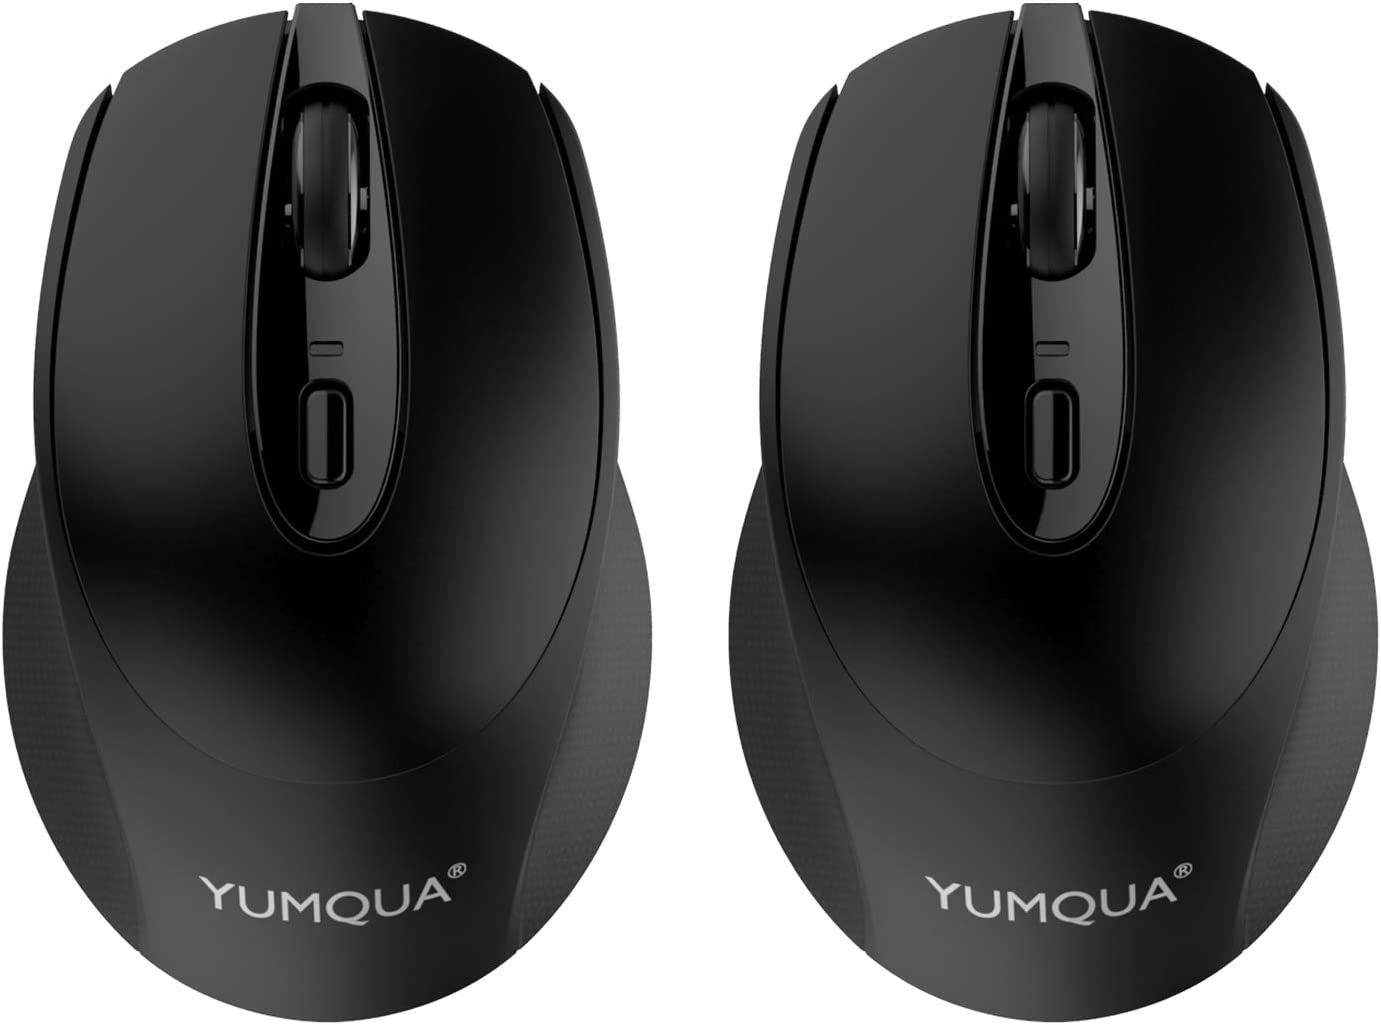 YUMQUA SB222-W Computer Mouse Wireless 2 Pack, 2.4GHz Optical Silent Mouse with Nano USB Receiver, 3 Adjustable DPI(Up to 1600), Cordless Mouse for Laptop PC Desktop Computer